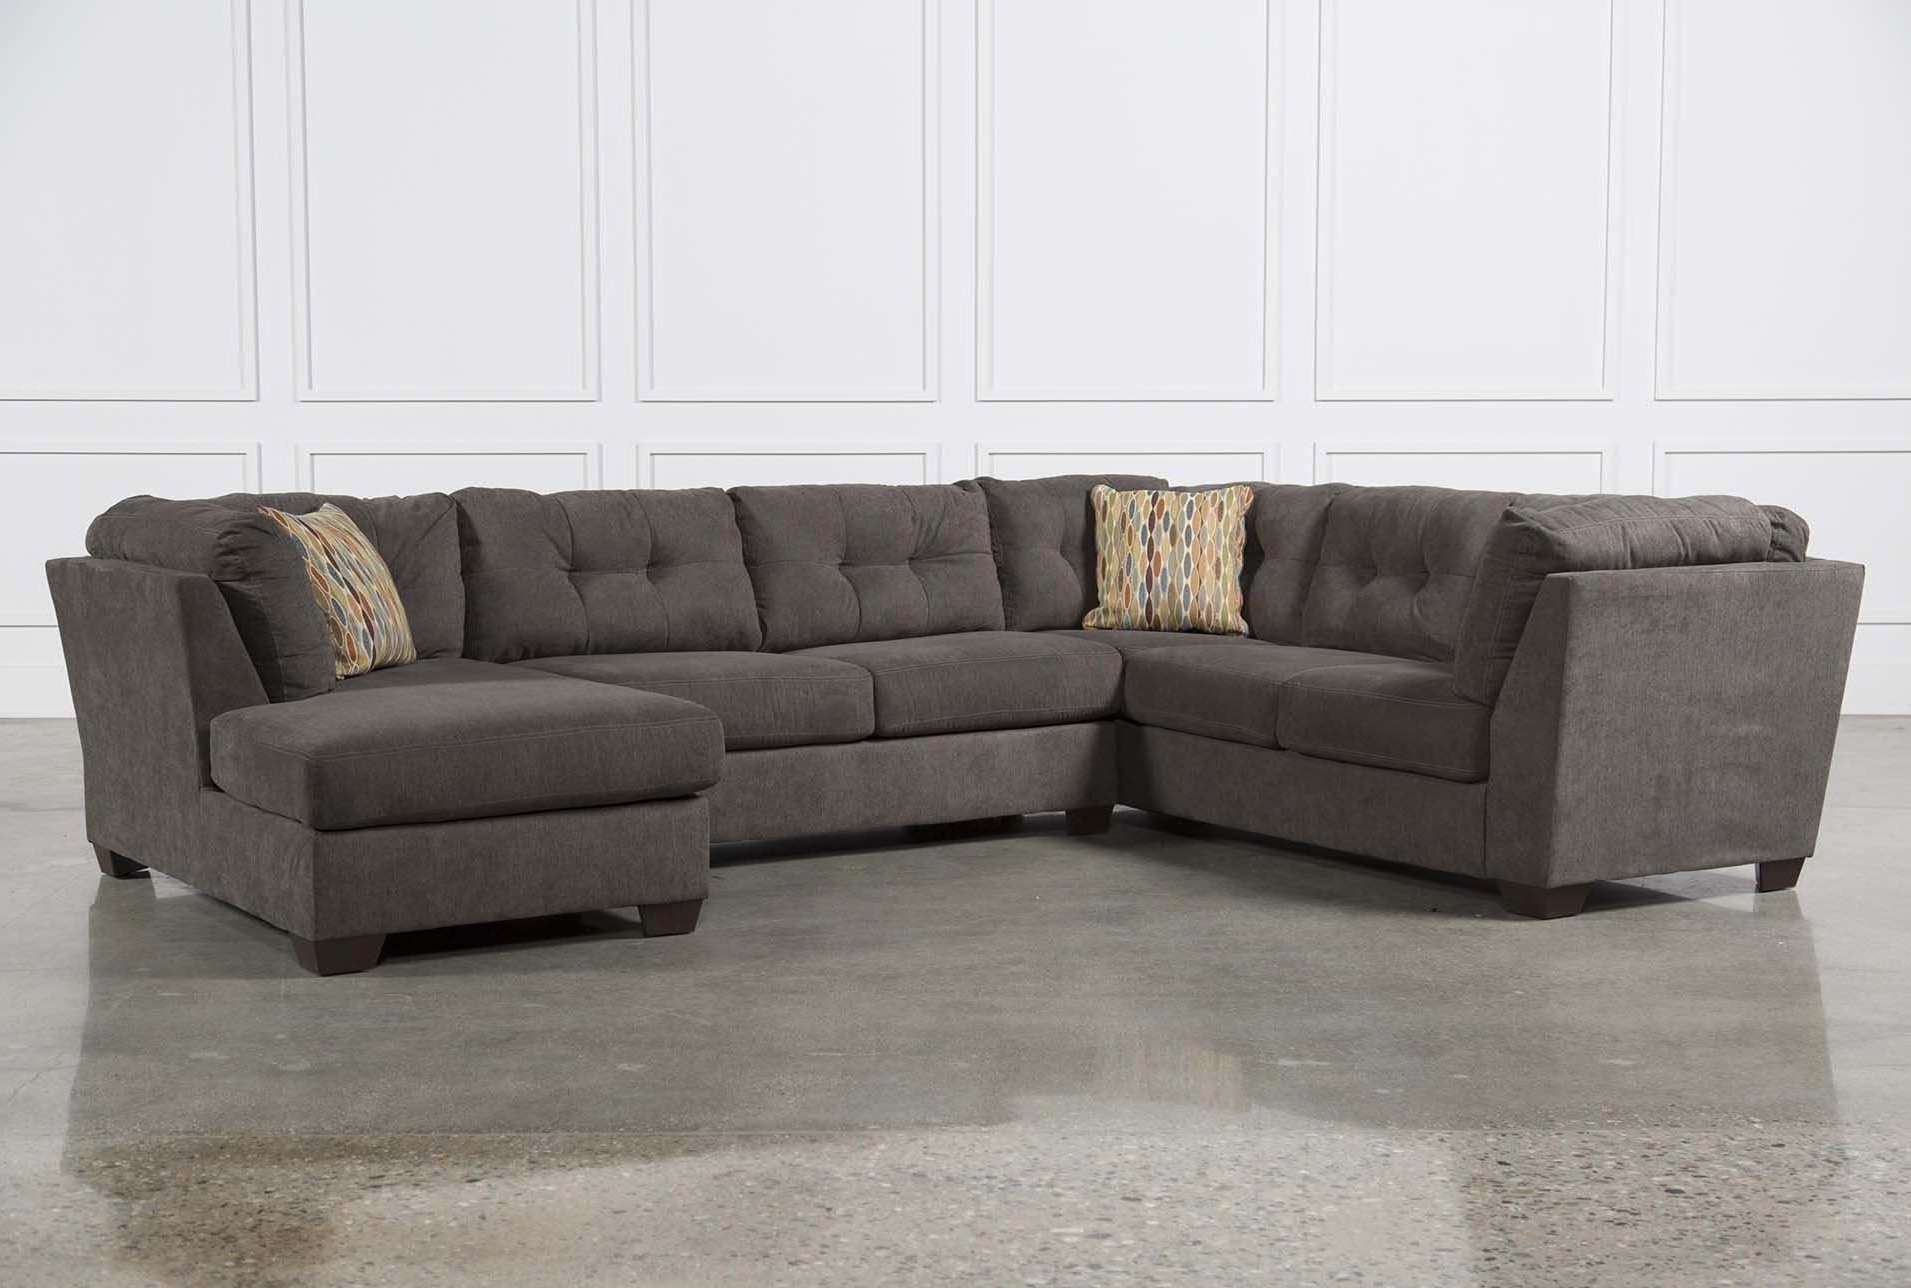 Preferred 3 Piece Sectional Sleeper Sofa Design Inspiration – Designing An Within Lucy Dark Grey 2 Piece Sectionals With Laf Chaise (View 14 of 20)